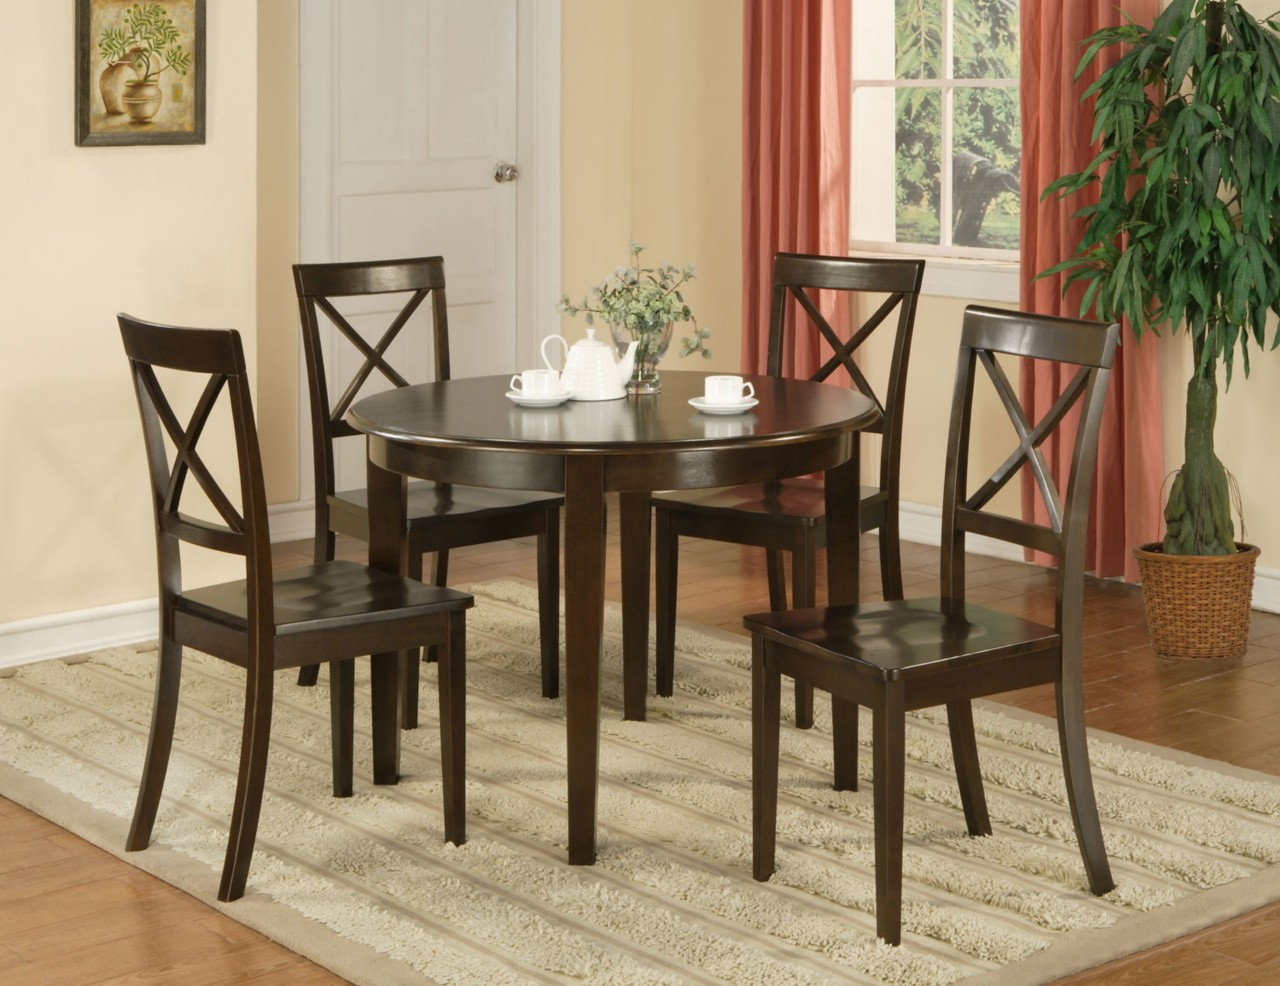 5 pc boston round dinette dining table 4 wood seat chairs in cappuccino ebay. Black Bedroom Furniture Sets. Home Design Ideas